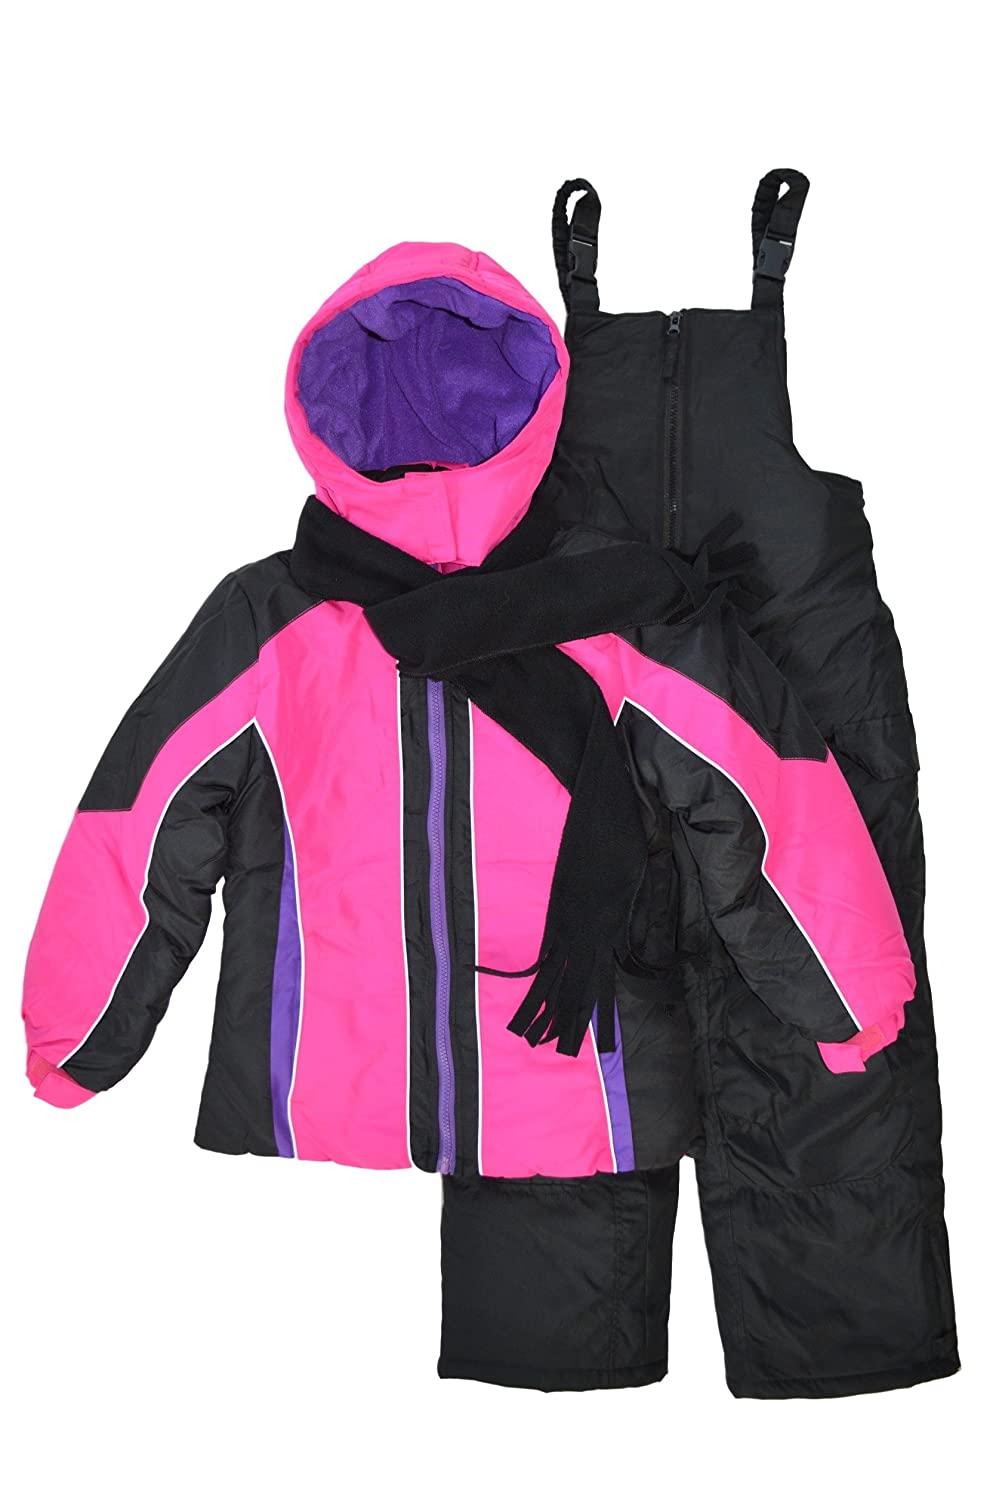 Snowsuits for Kids Girl's 3-Piece Fleece Lined Active Snowsuit